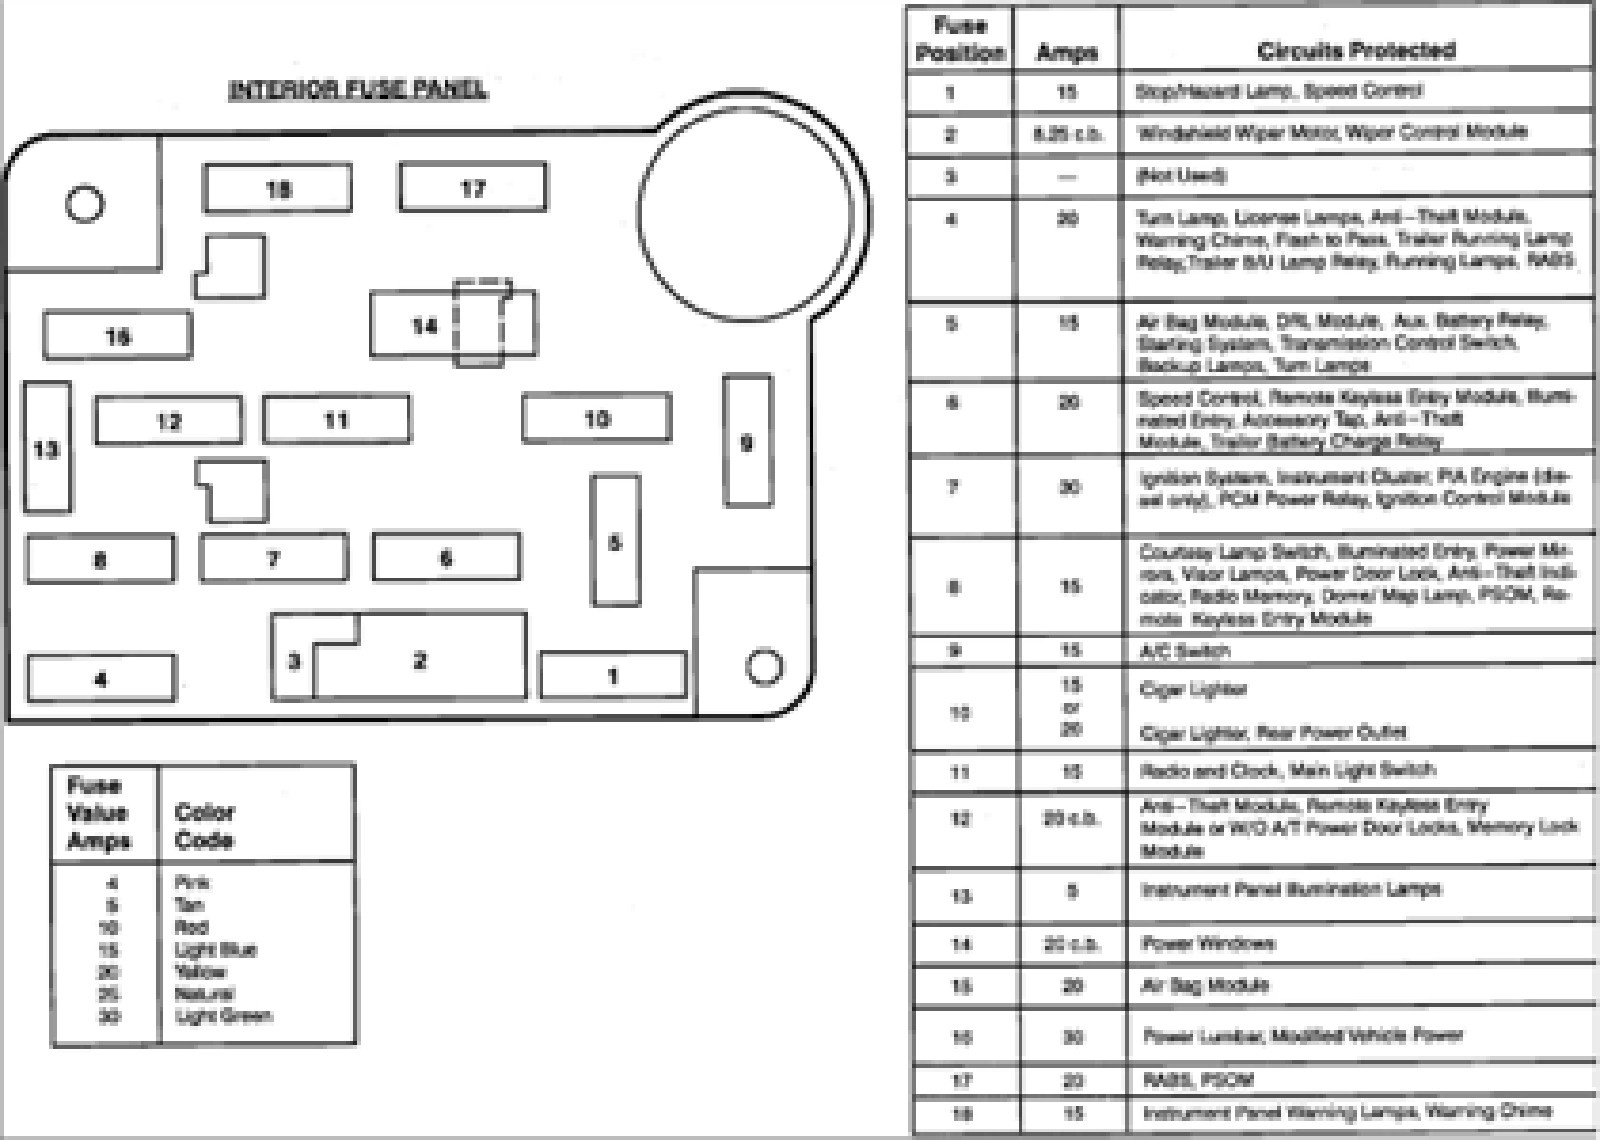 pic 8862473225641007897 1600x1200 2000 ford e150 fuse box diagram 1999 ford f 250 fuse panel diagram 2003 ford econoline van fuse box diagram at suagrazia.org